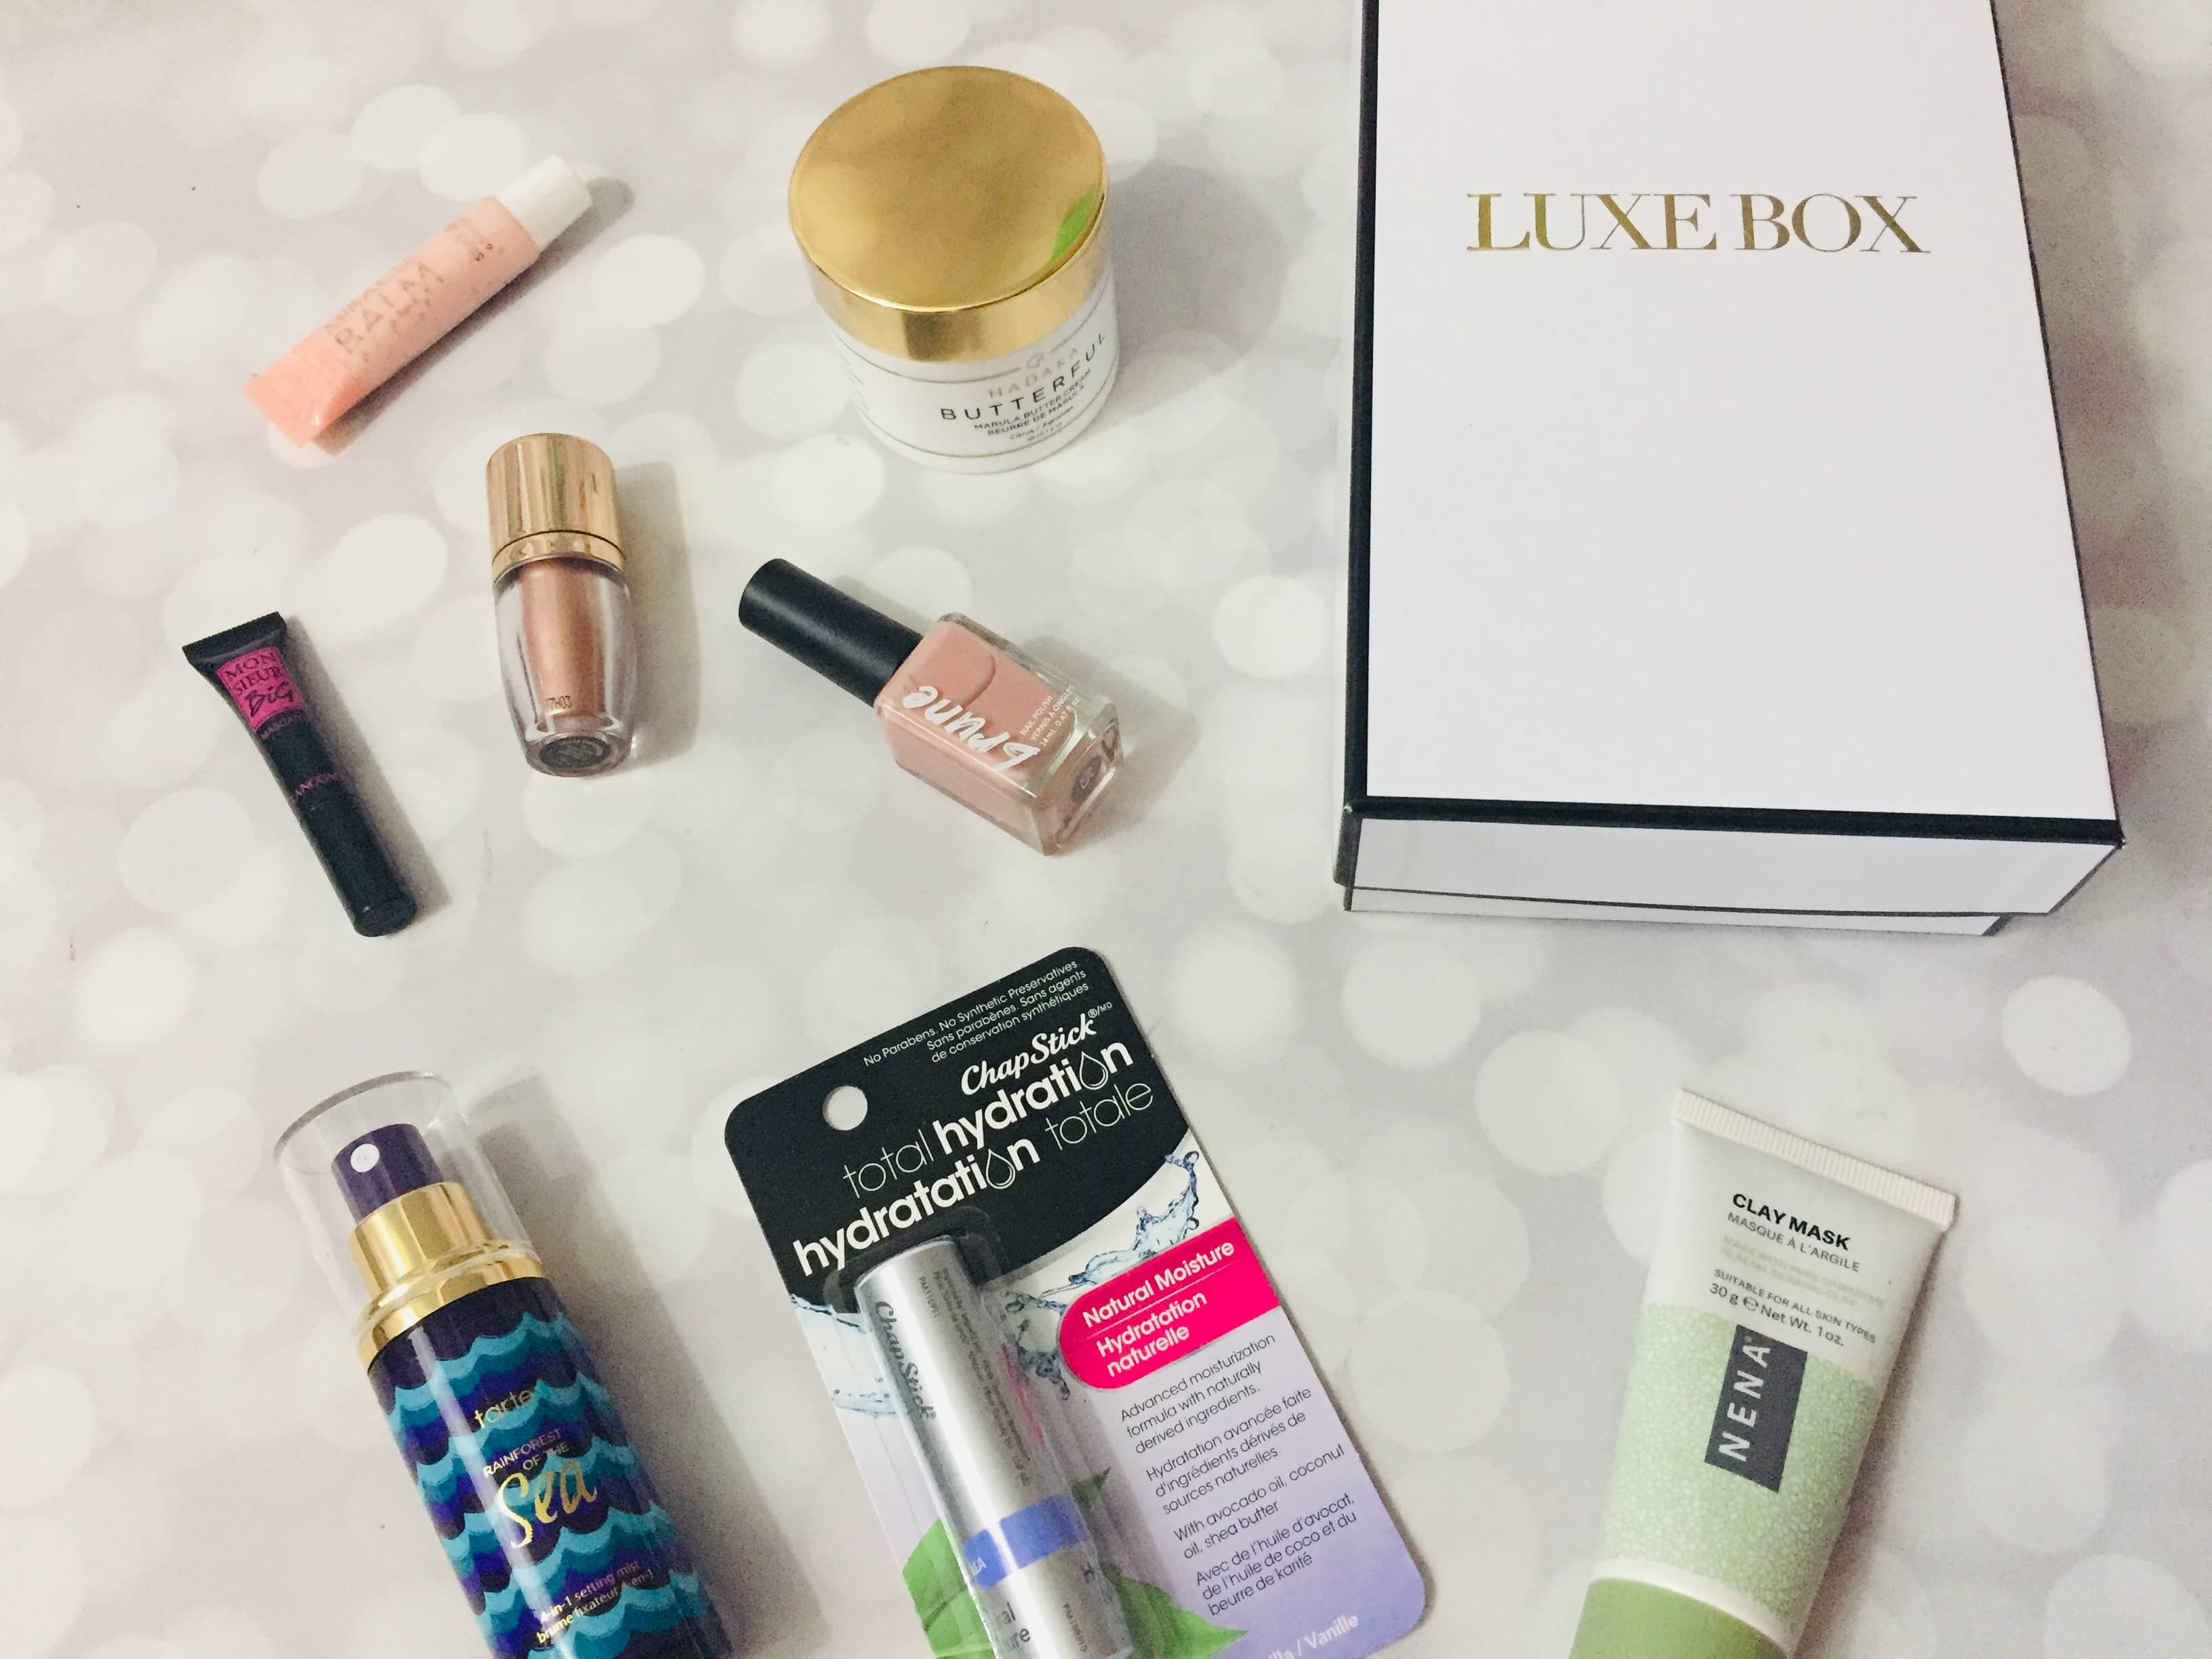 Luxe Box Spring 2019 Subscription Box Review